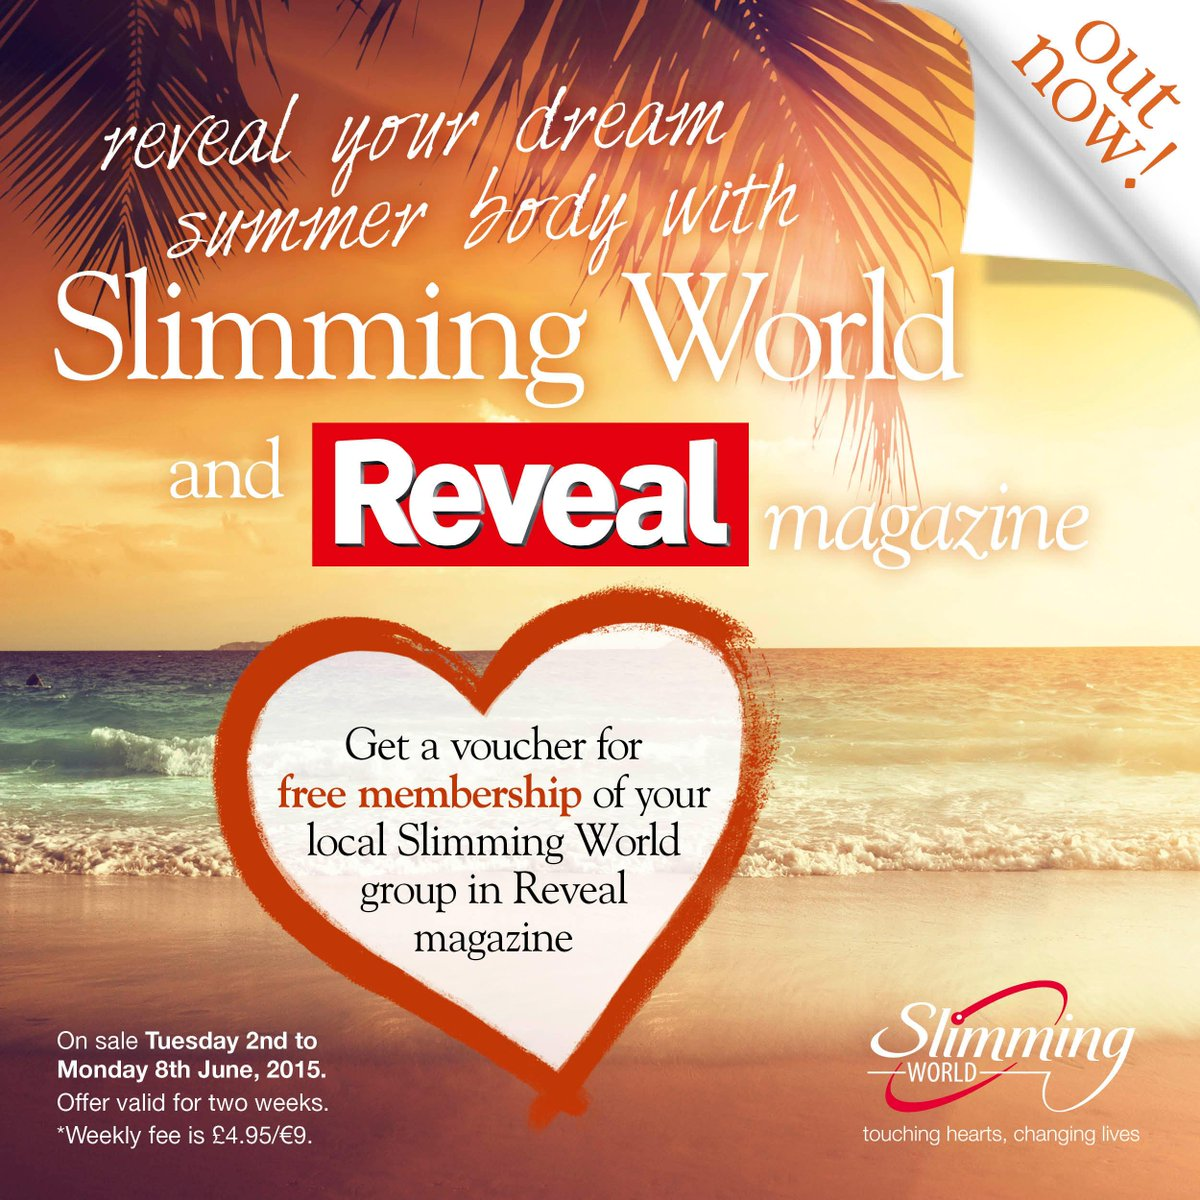 ICYMI: Join Slimming World for FREE, saving £10! Find out how in this week's Reveal magazine!